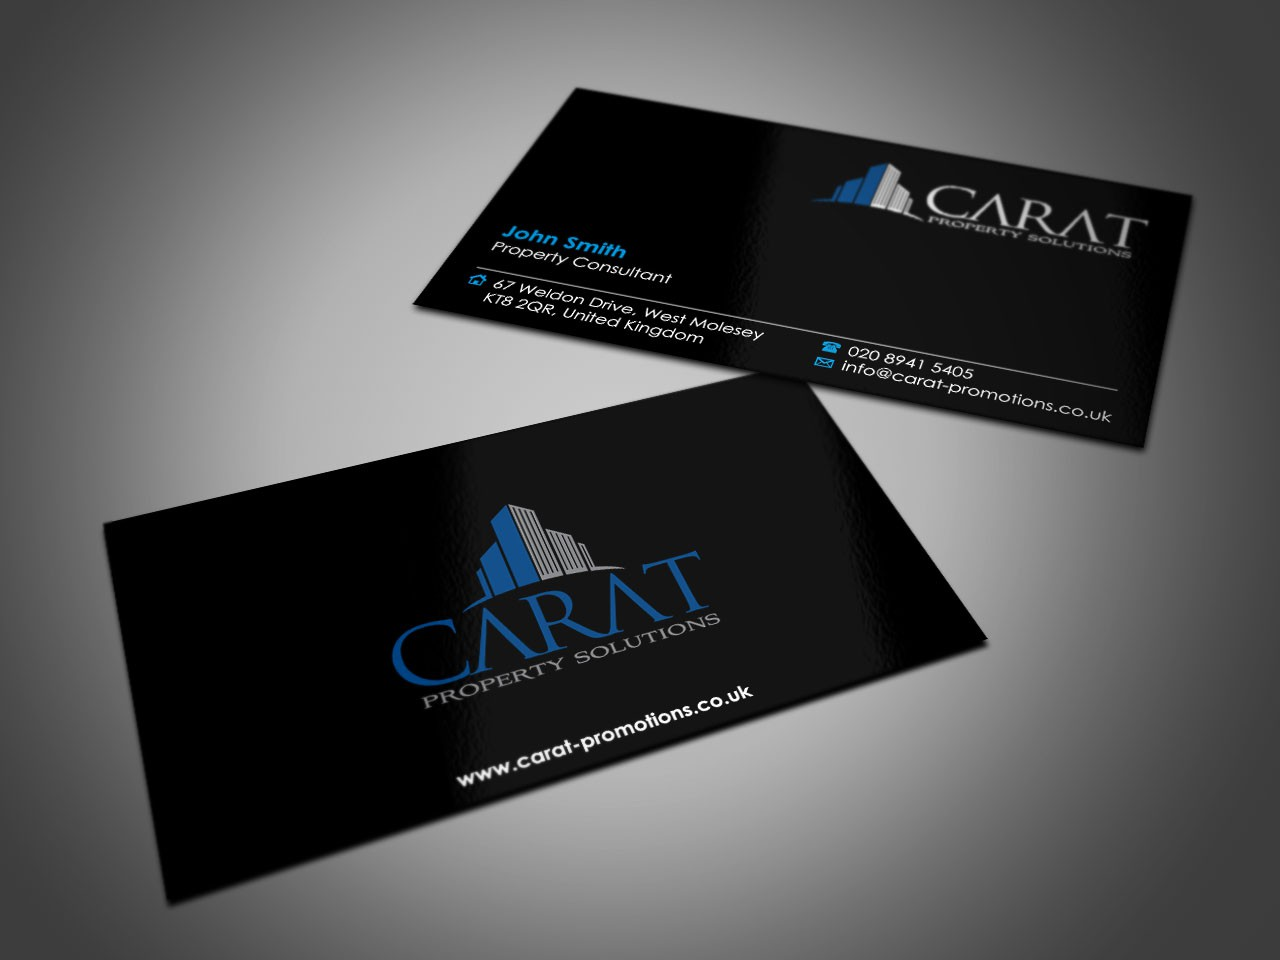 Help Carat Property Solutions with a new logo and business card, to be sophisticated and elegant